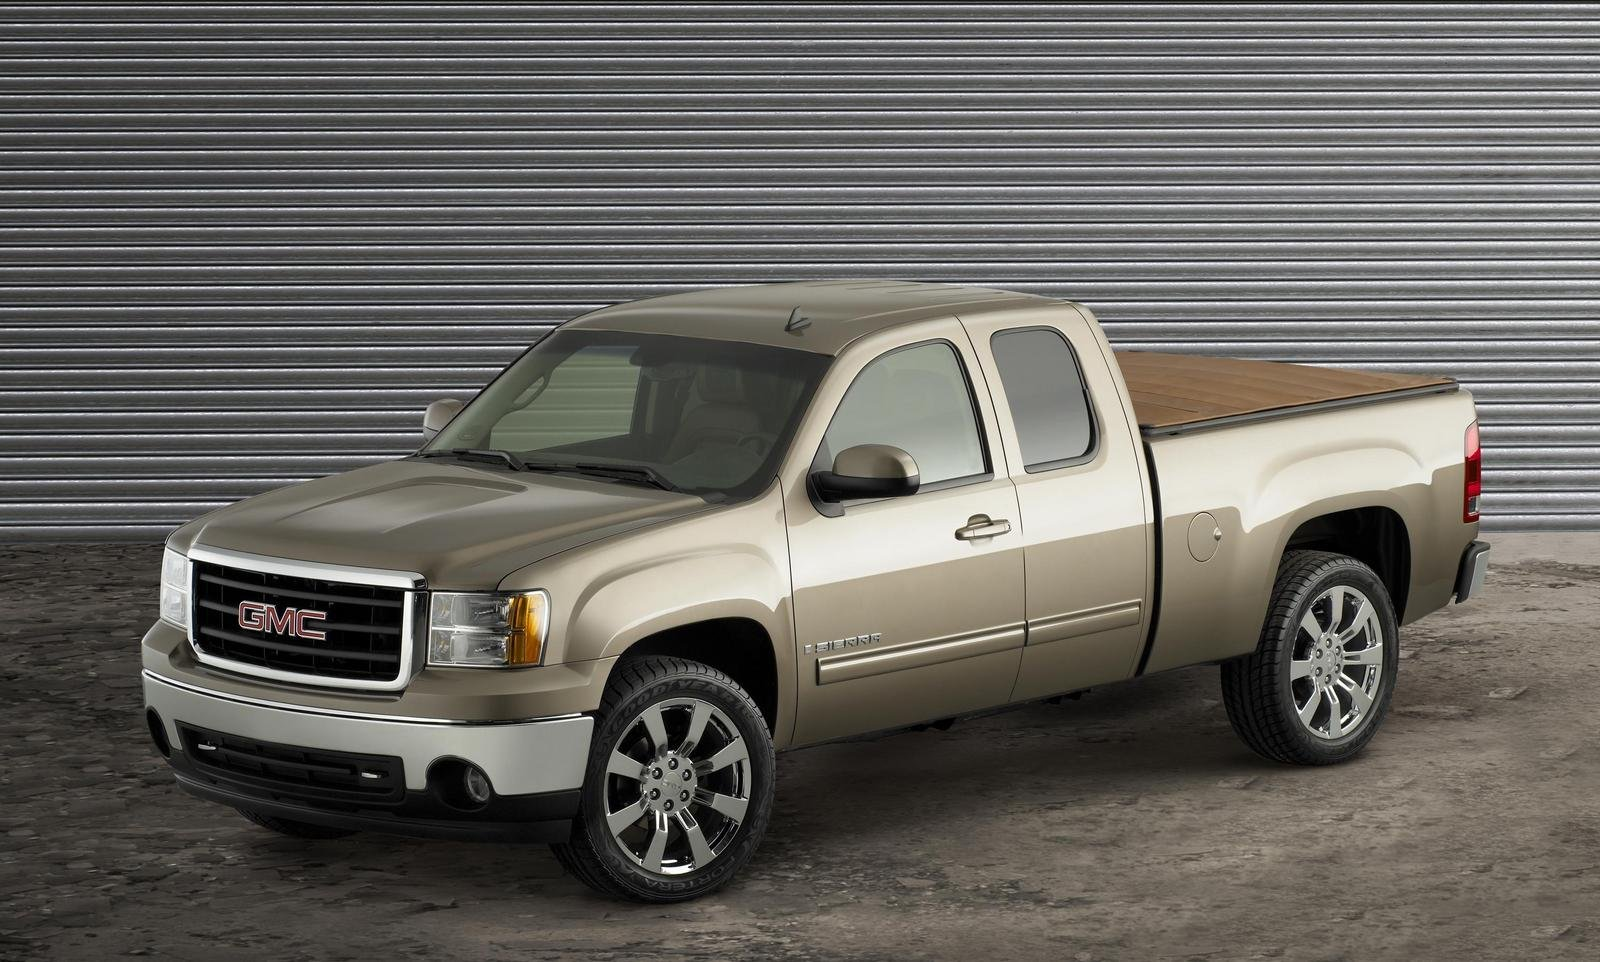 Gmc Special Edition Trucks >> 2007 GMC Sierra 1500 Texas Edition Review - Top Speed